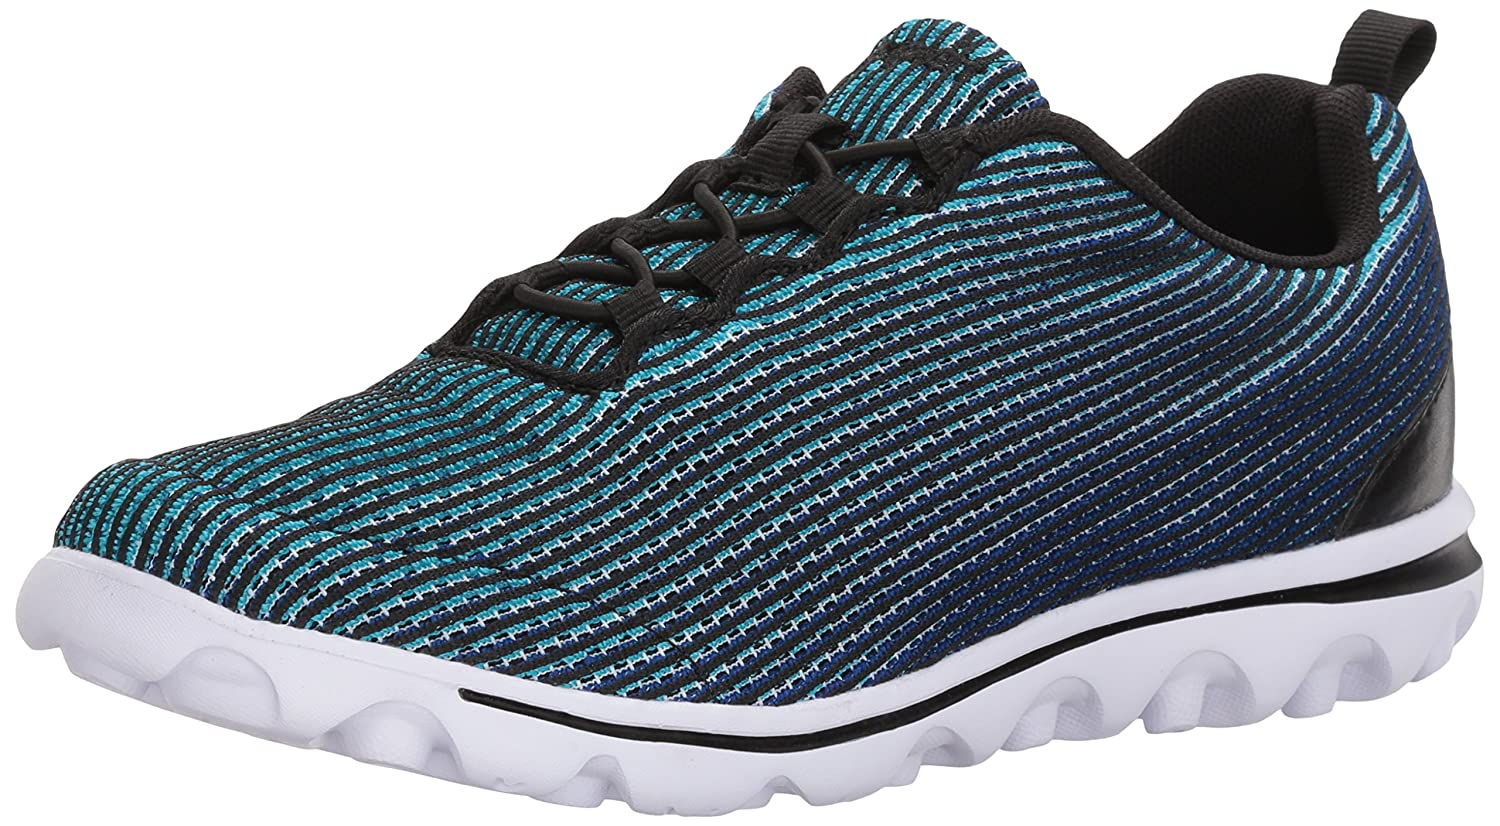 Propét Women's TravelActiv Xpress Sneaker B072JN74ZD 10 2E US|Black/Blue